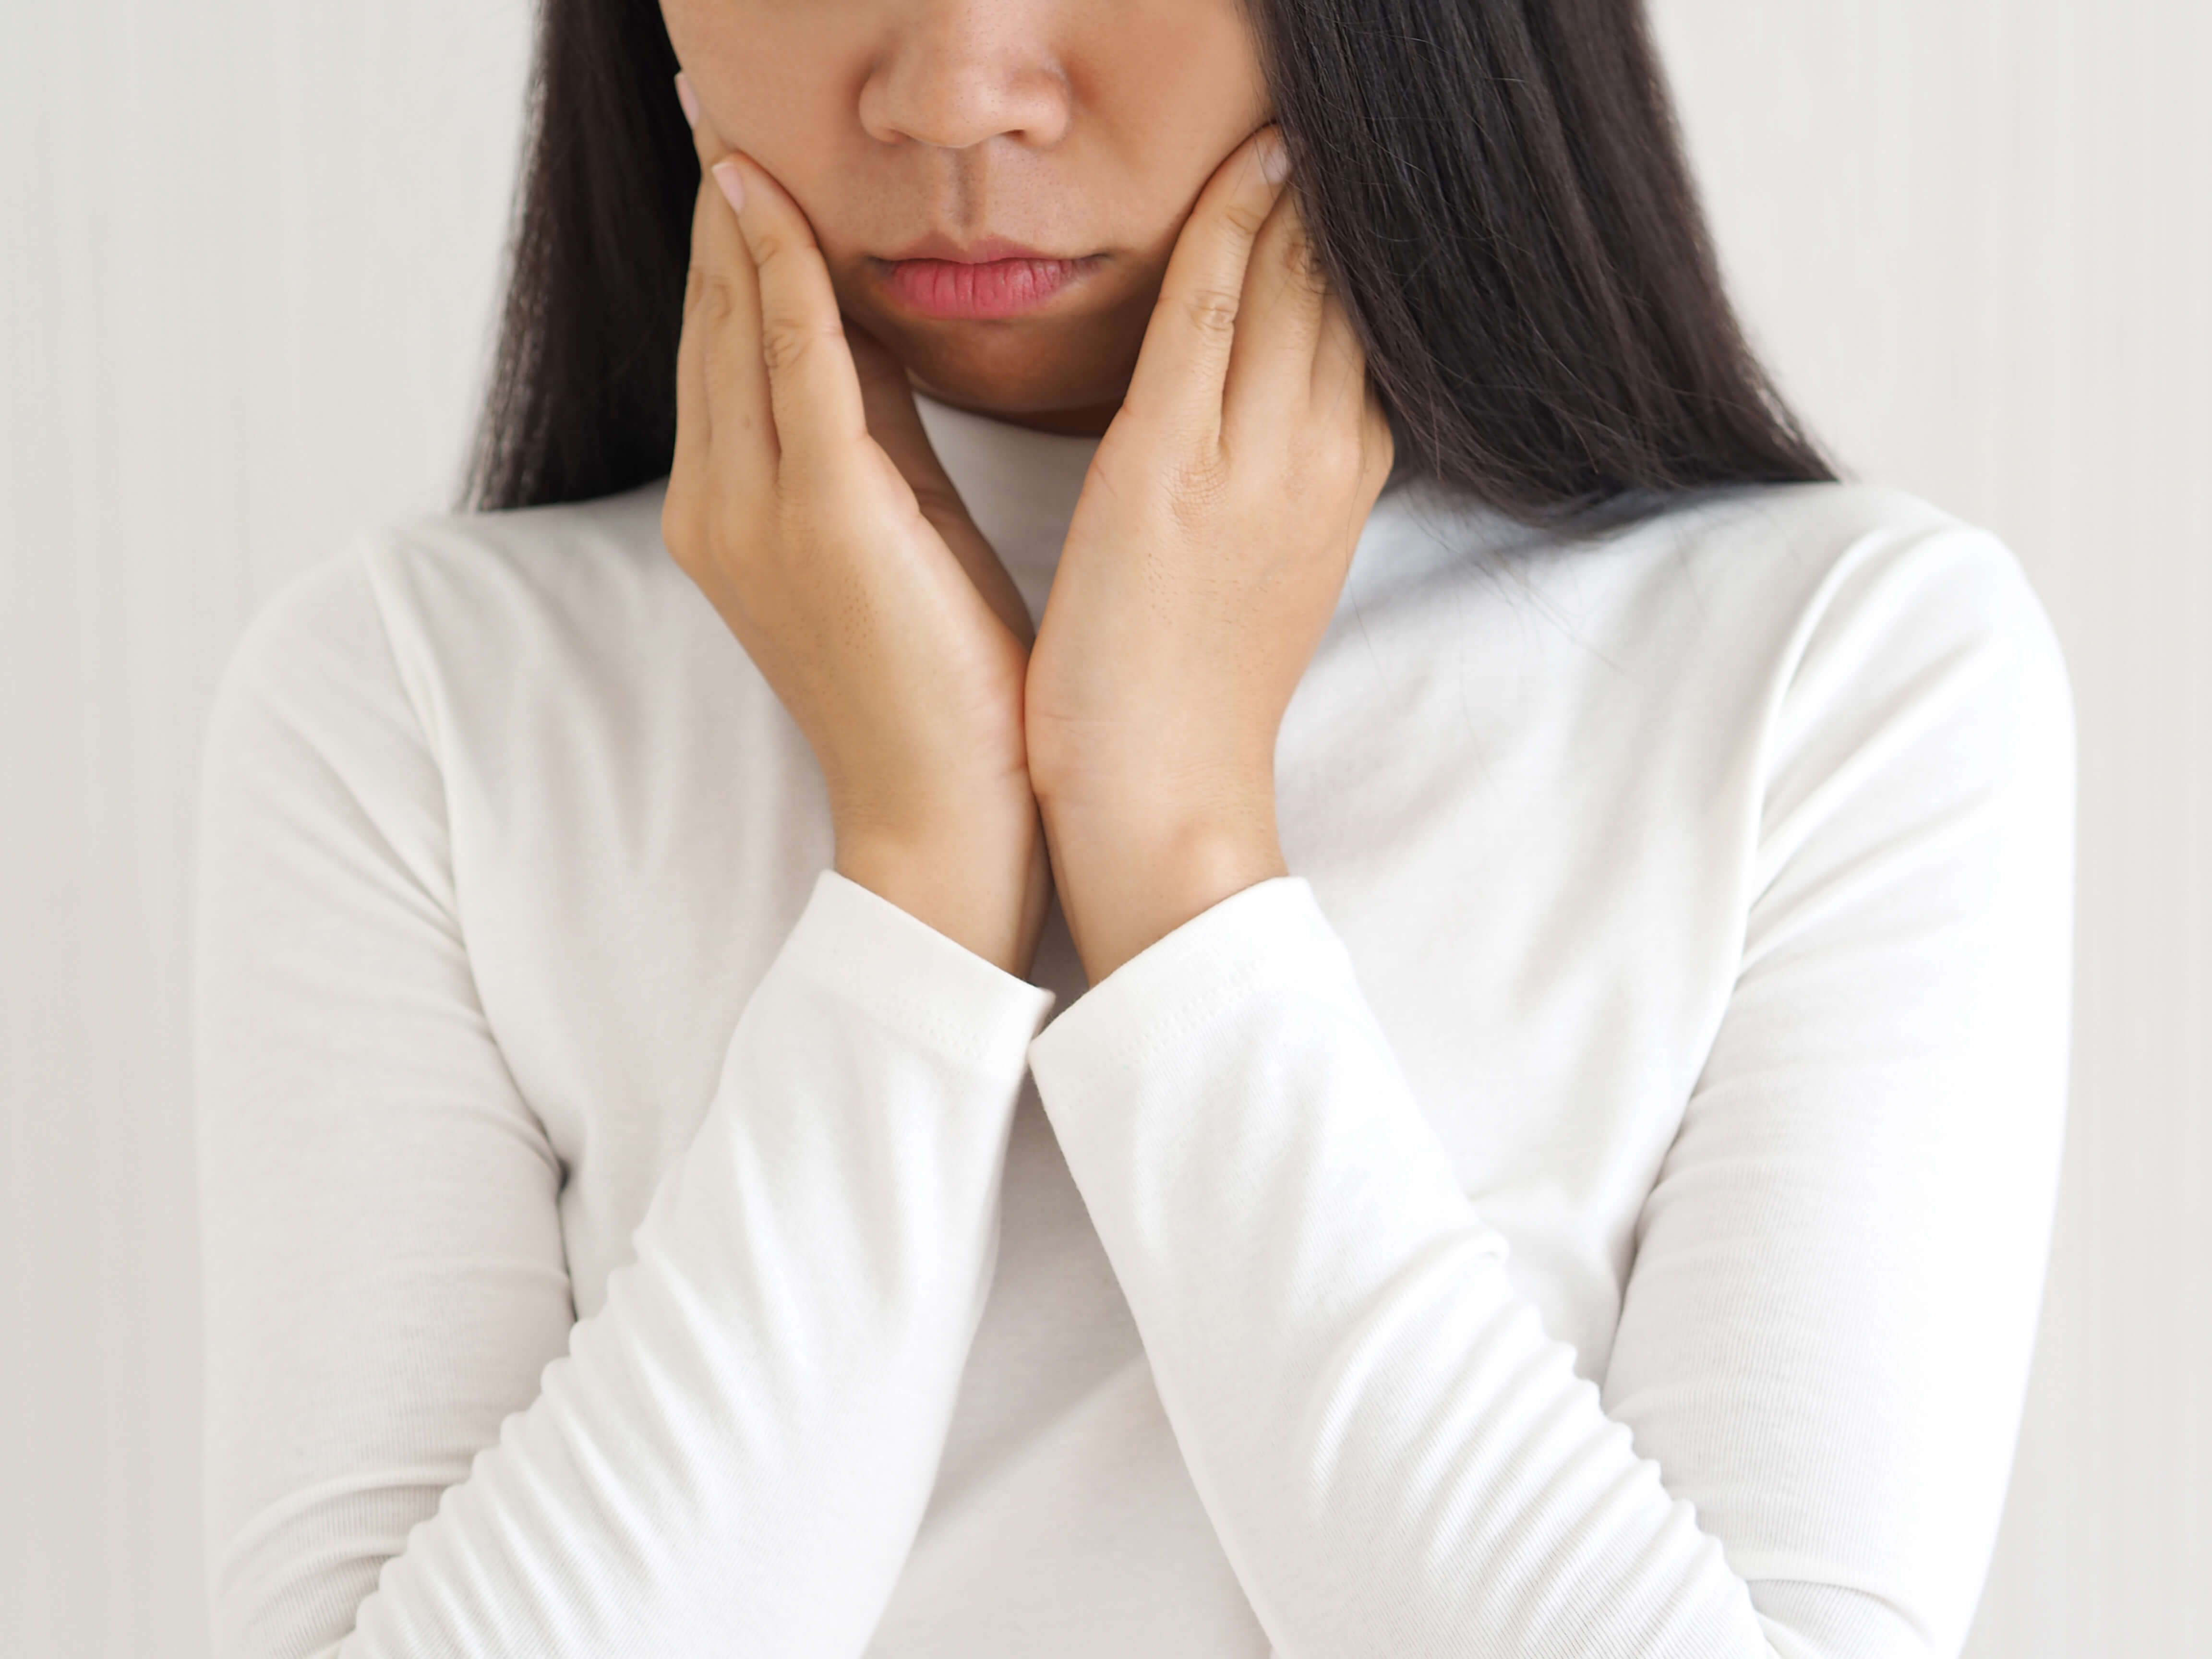 TMJ Pain In Mouth